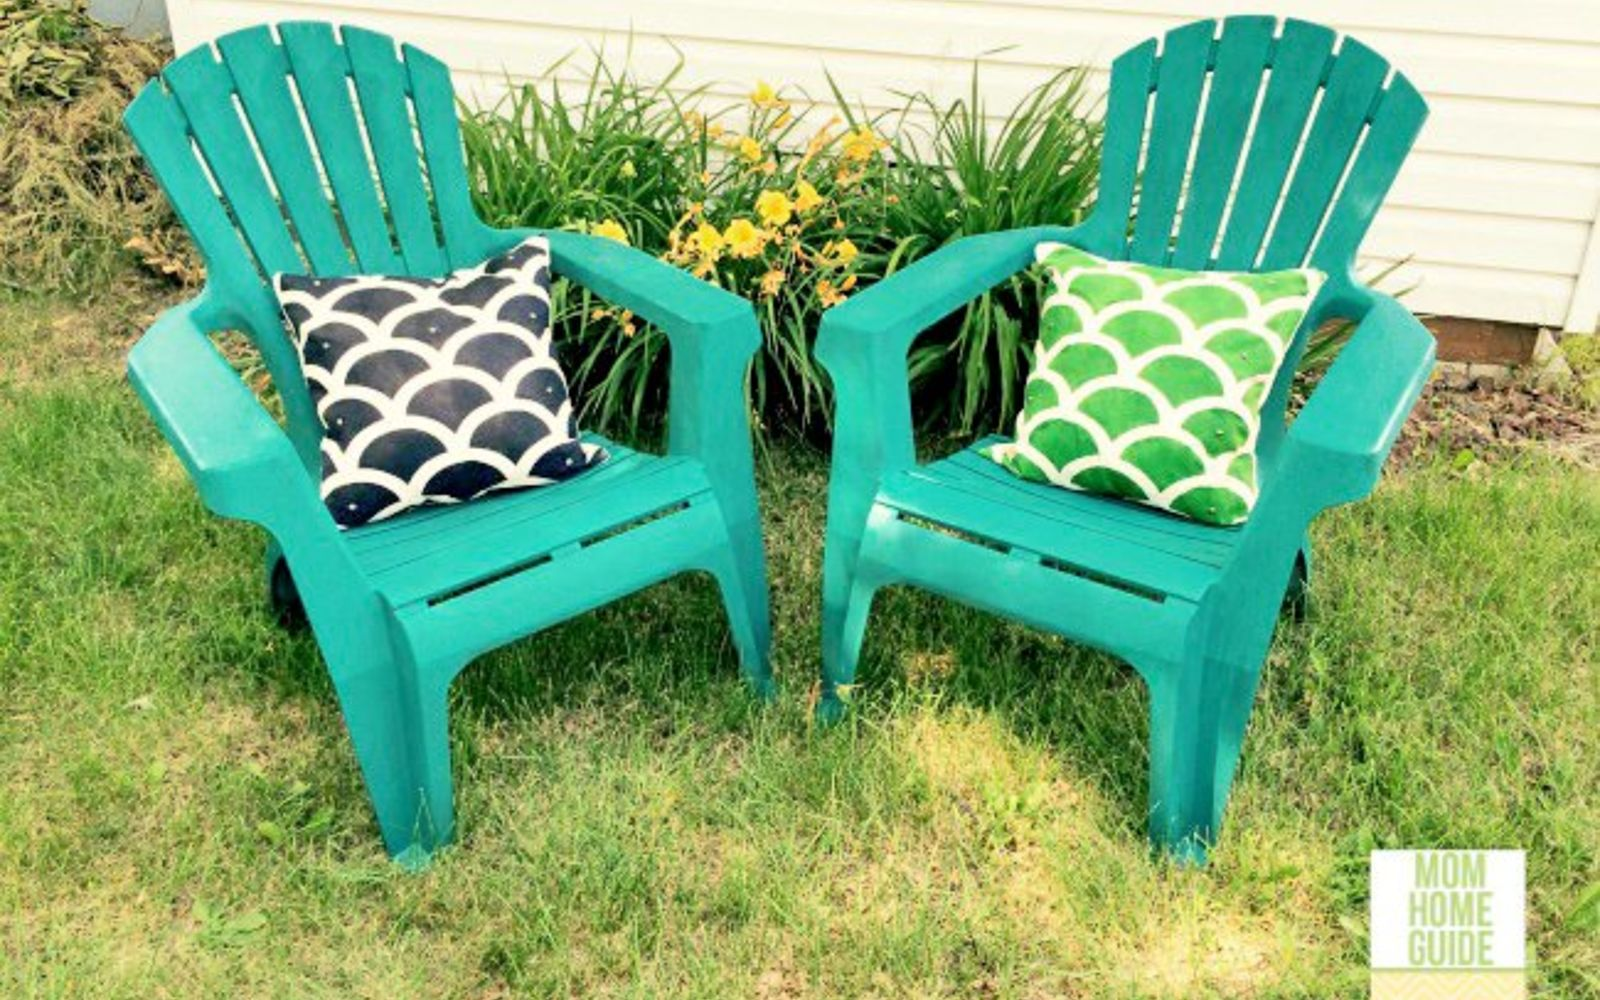 s 12 pool chair ideas we never would have thought of, Create Accent Pillows For Your Chairs